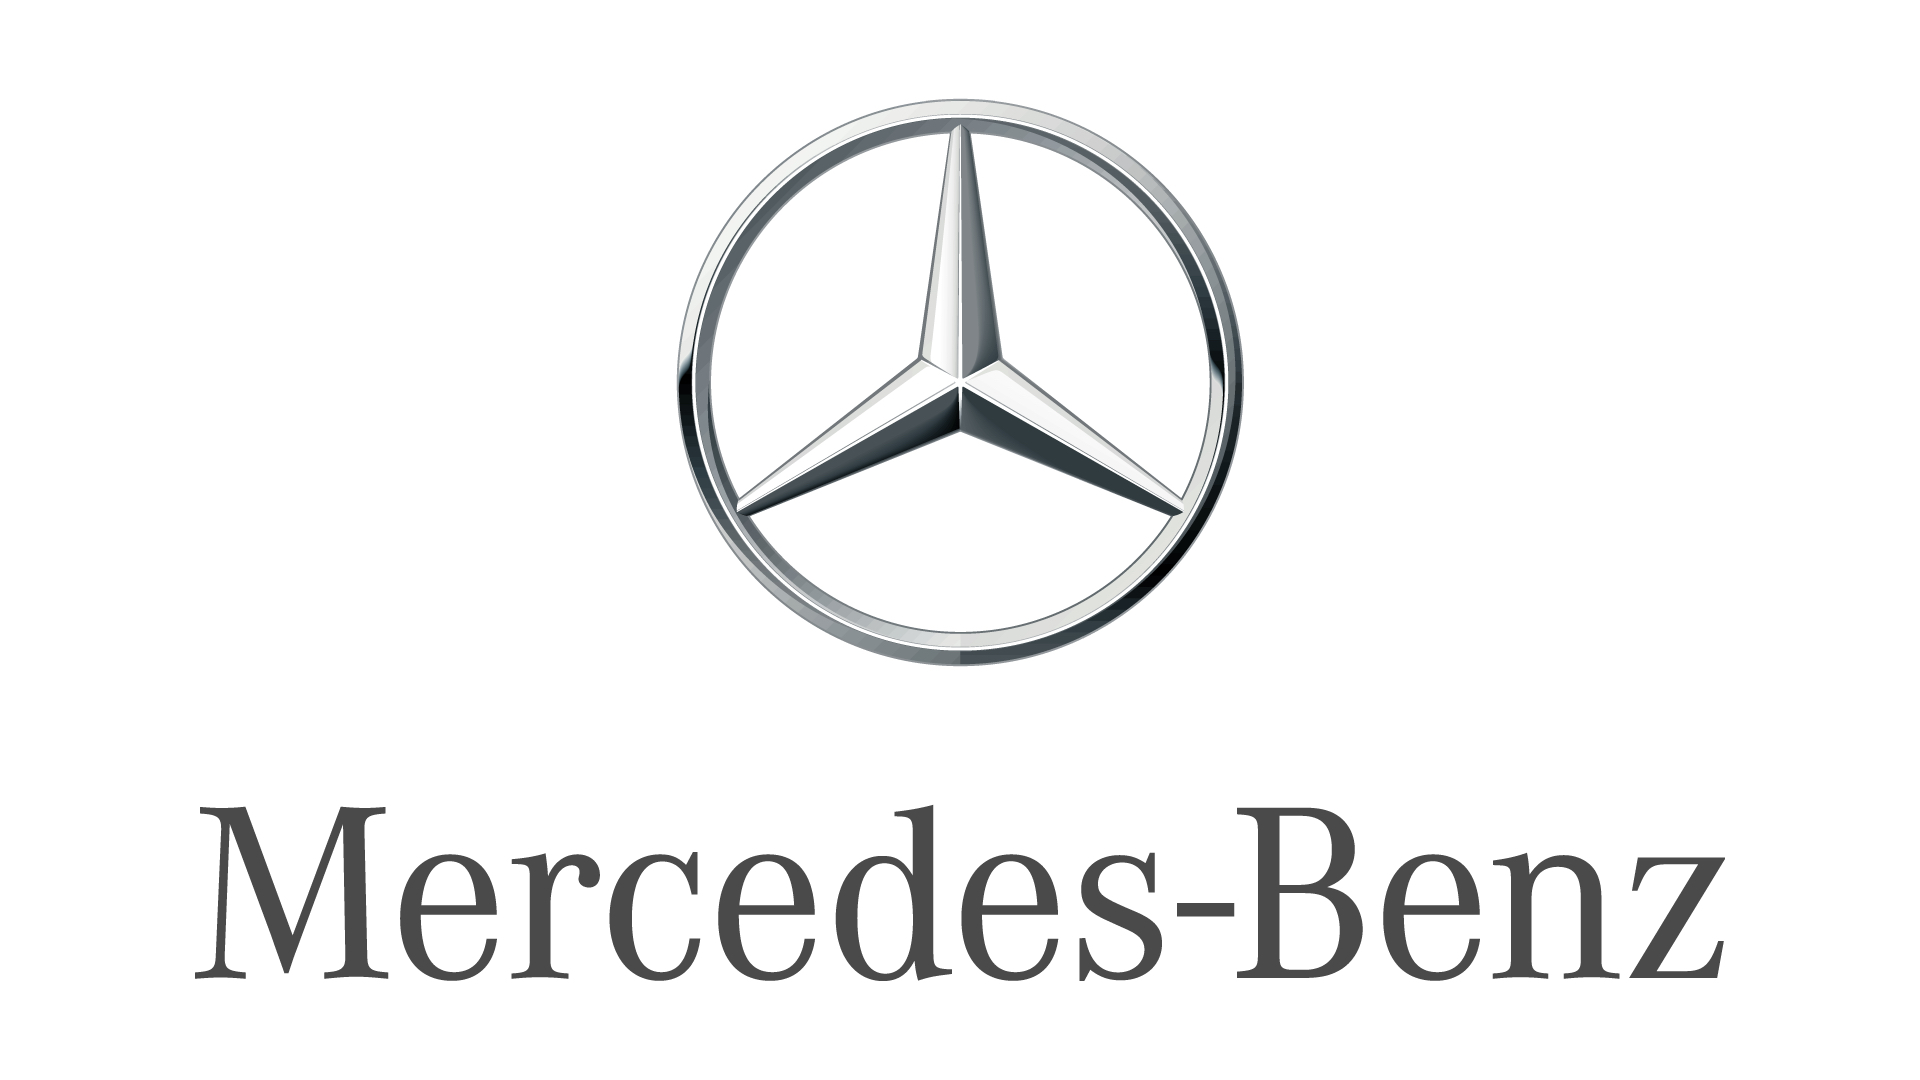 Mercedes-Benz corporate logo